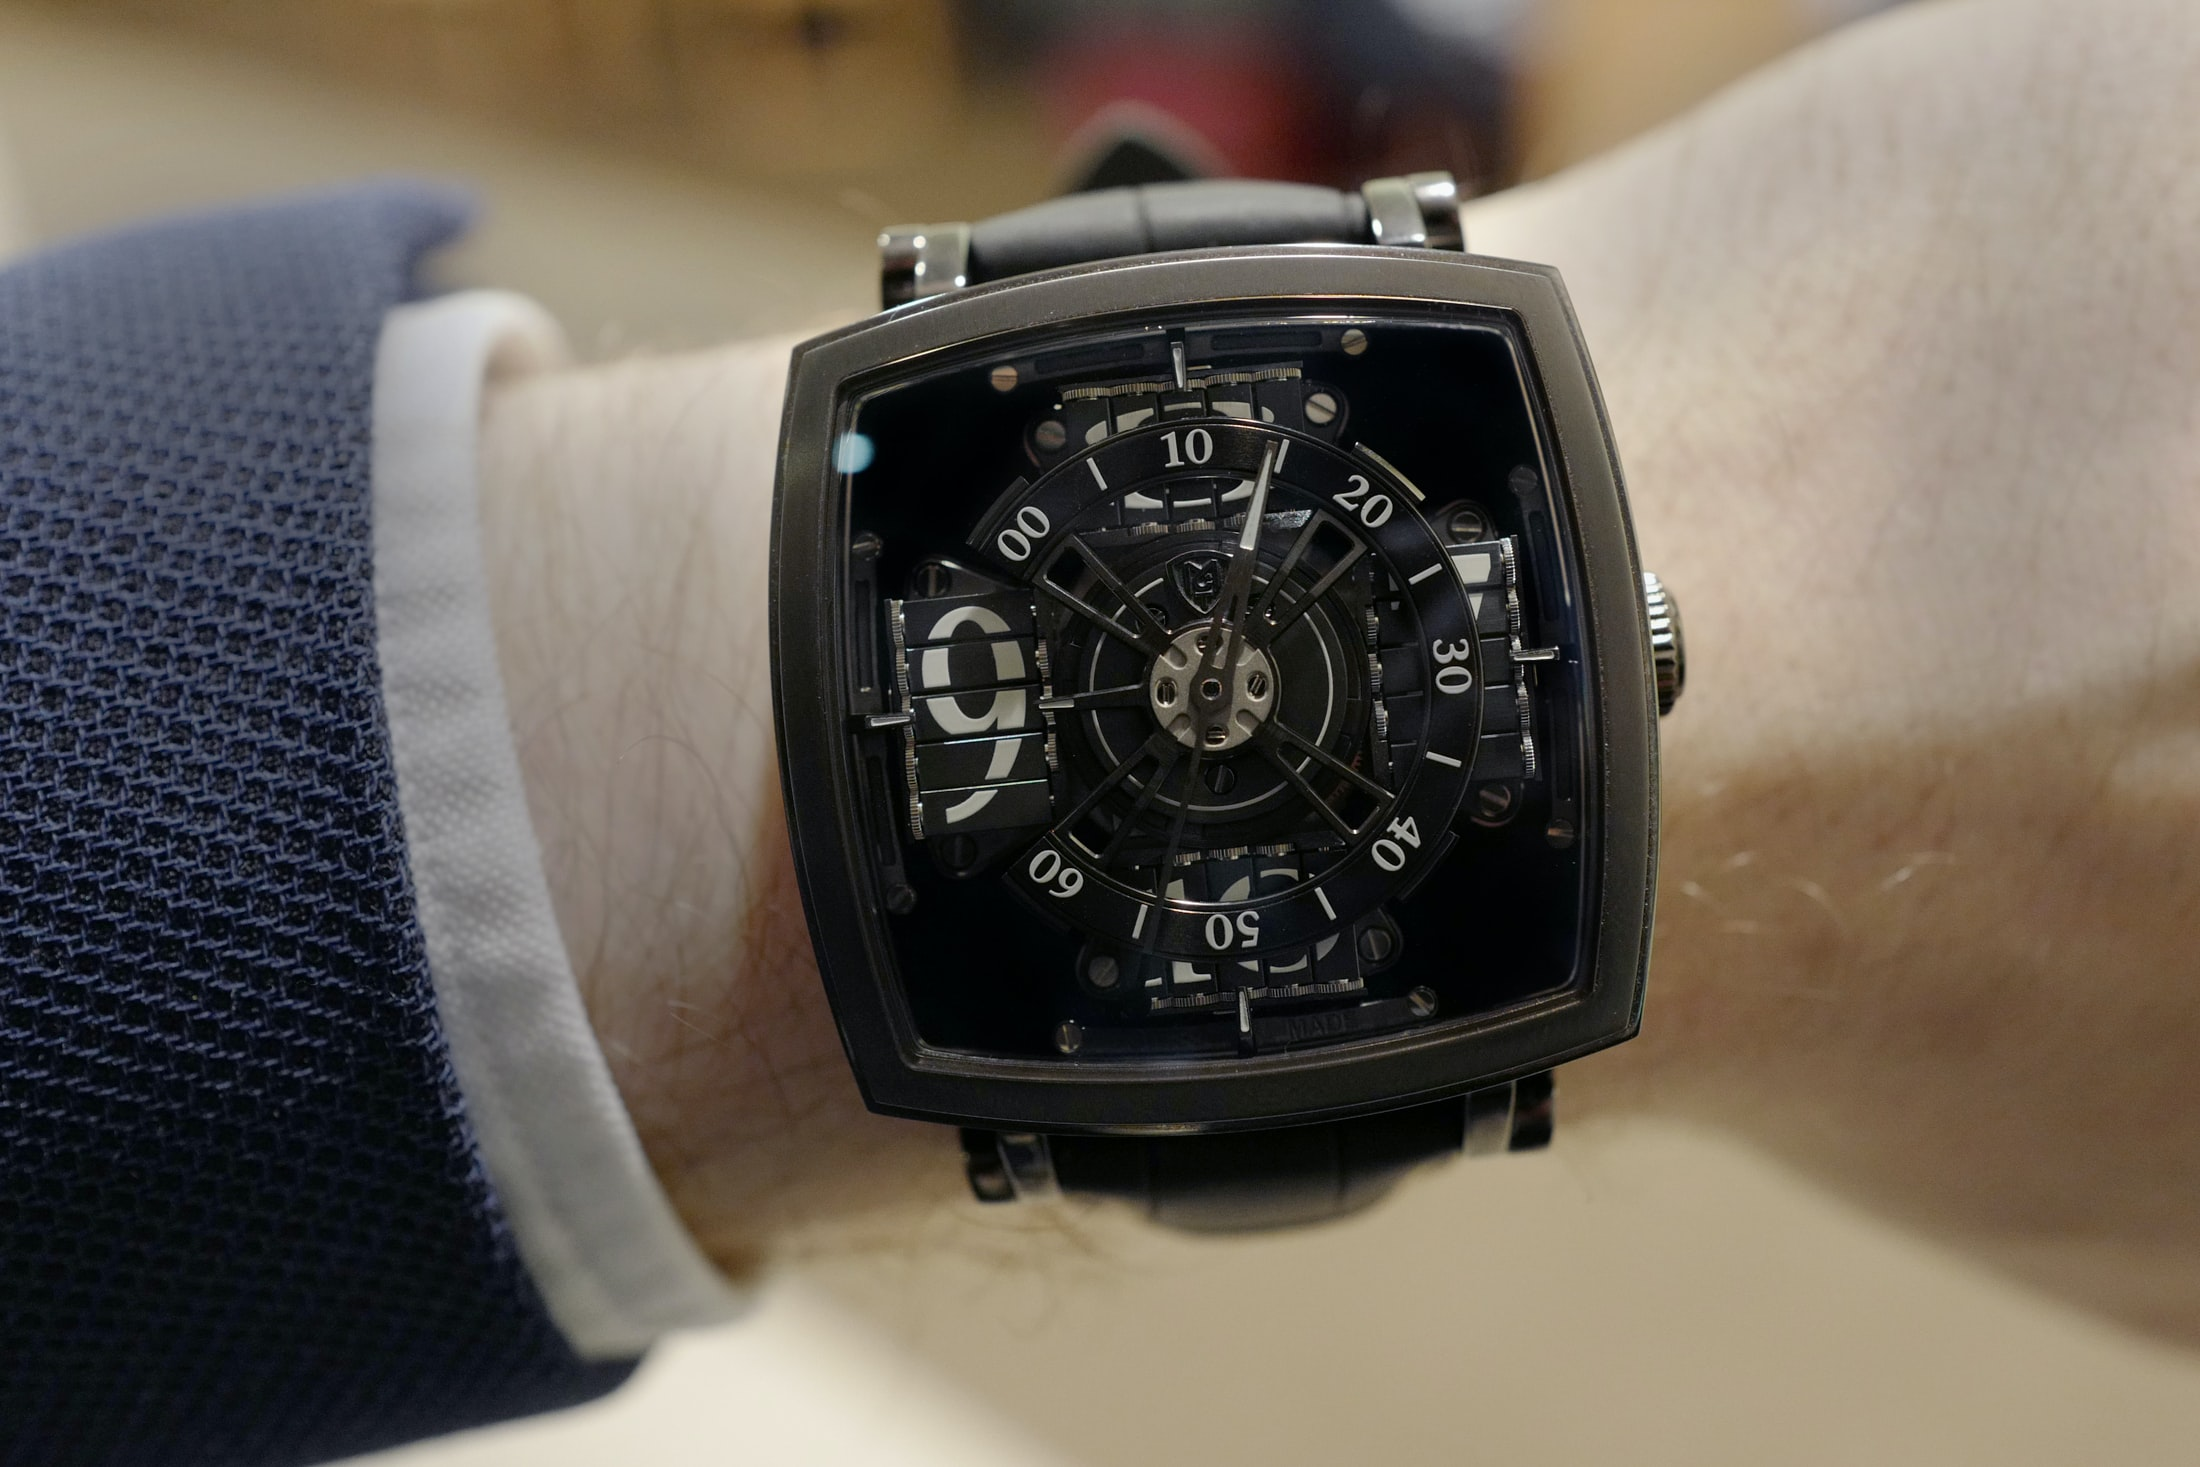 mct vantablack sequential one wristshot Hands-On: The MCT Sequential One 110 Evo Vantablack, The Darkest Watch Ever Made Hands-On: The MCT Sequential One 110 Evo Vantablack, The Darkest Watch Ever Made vantablack 01